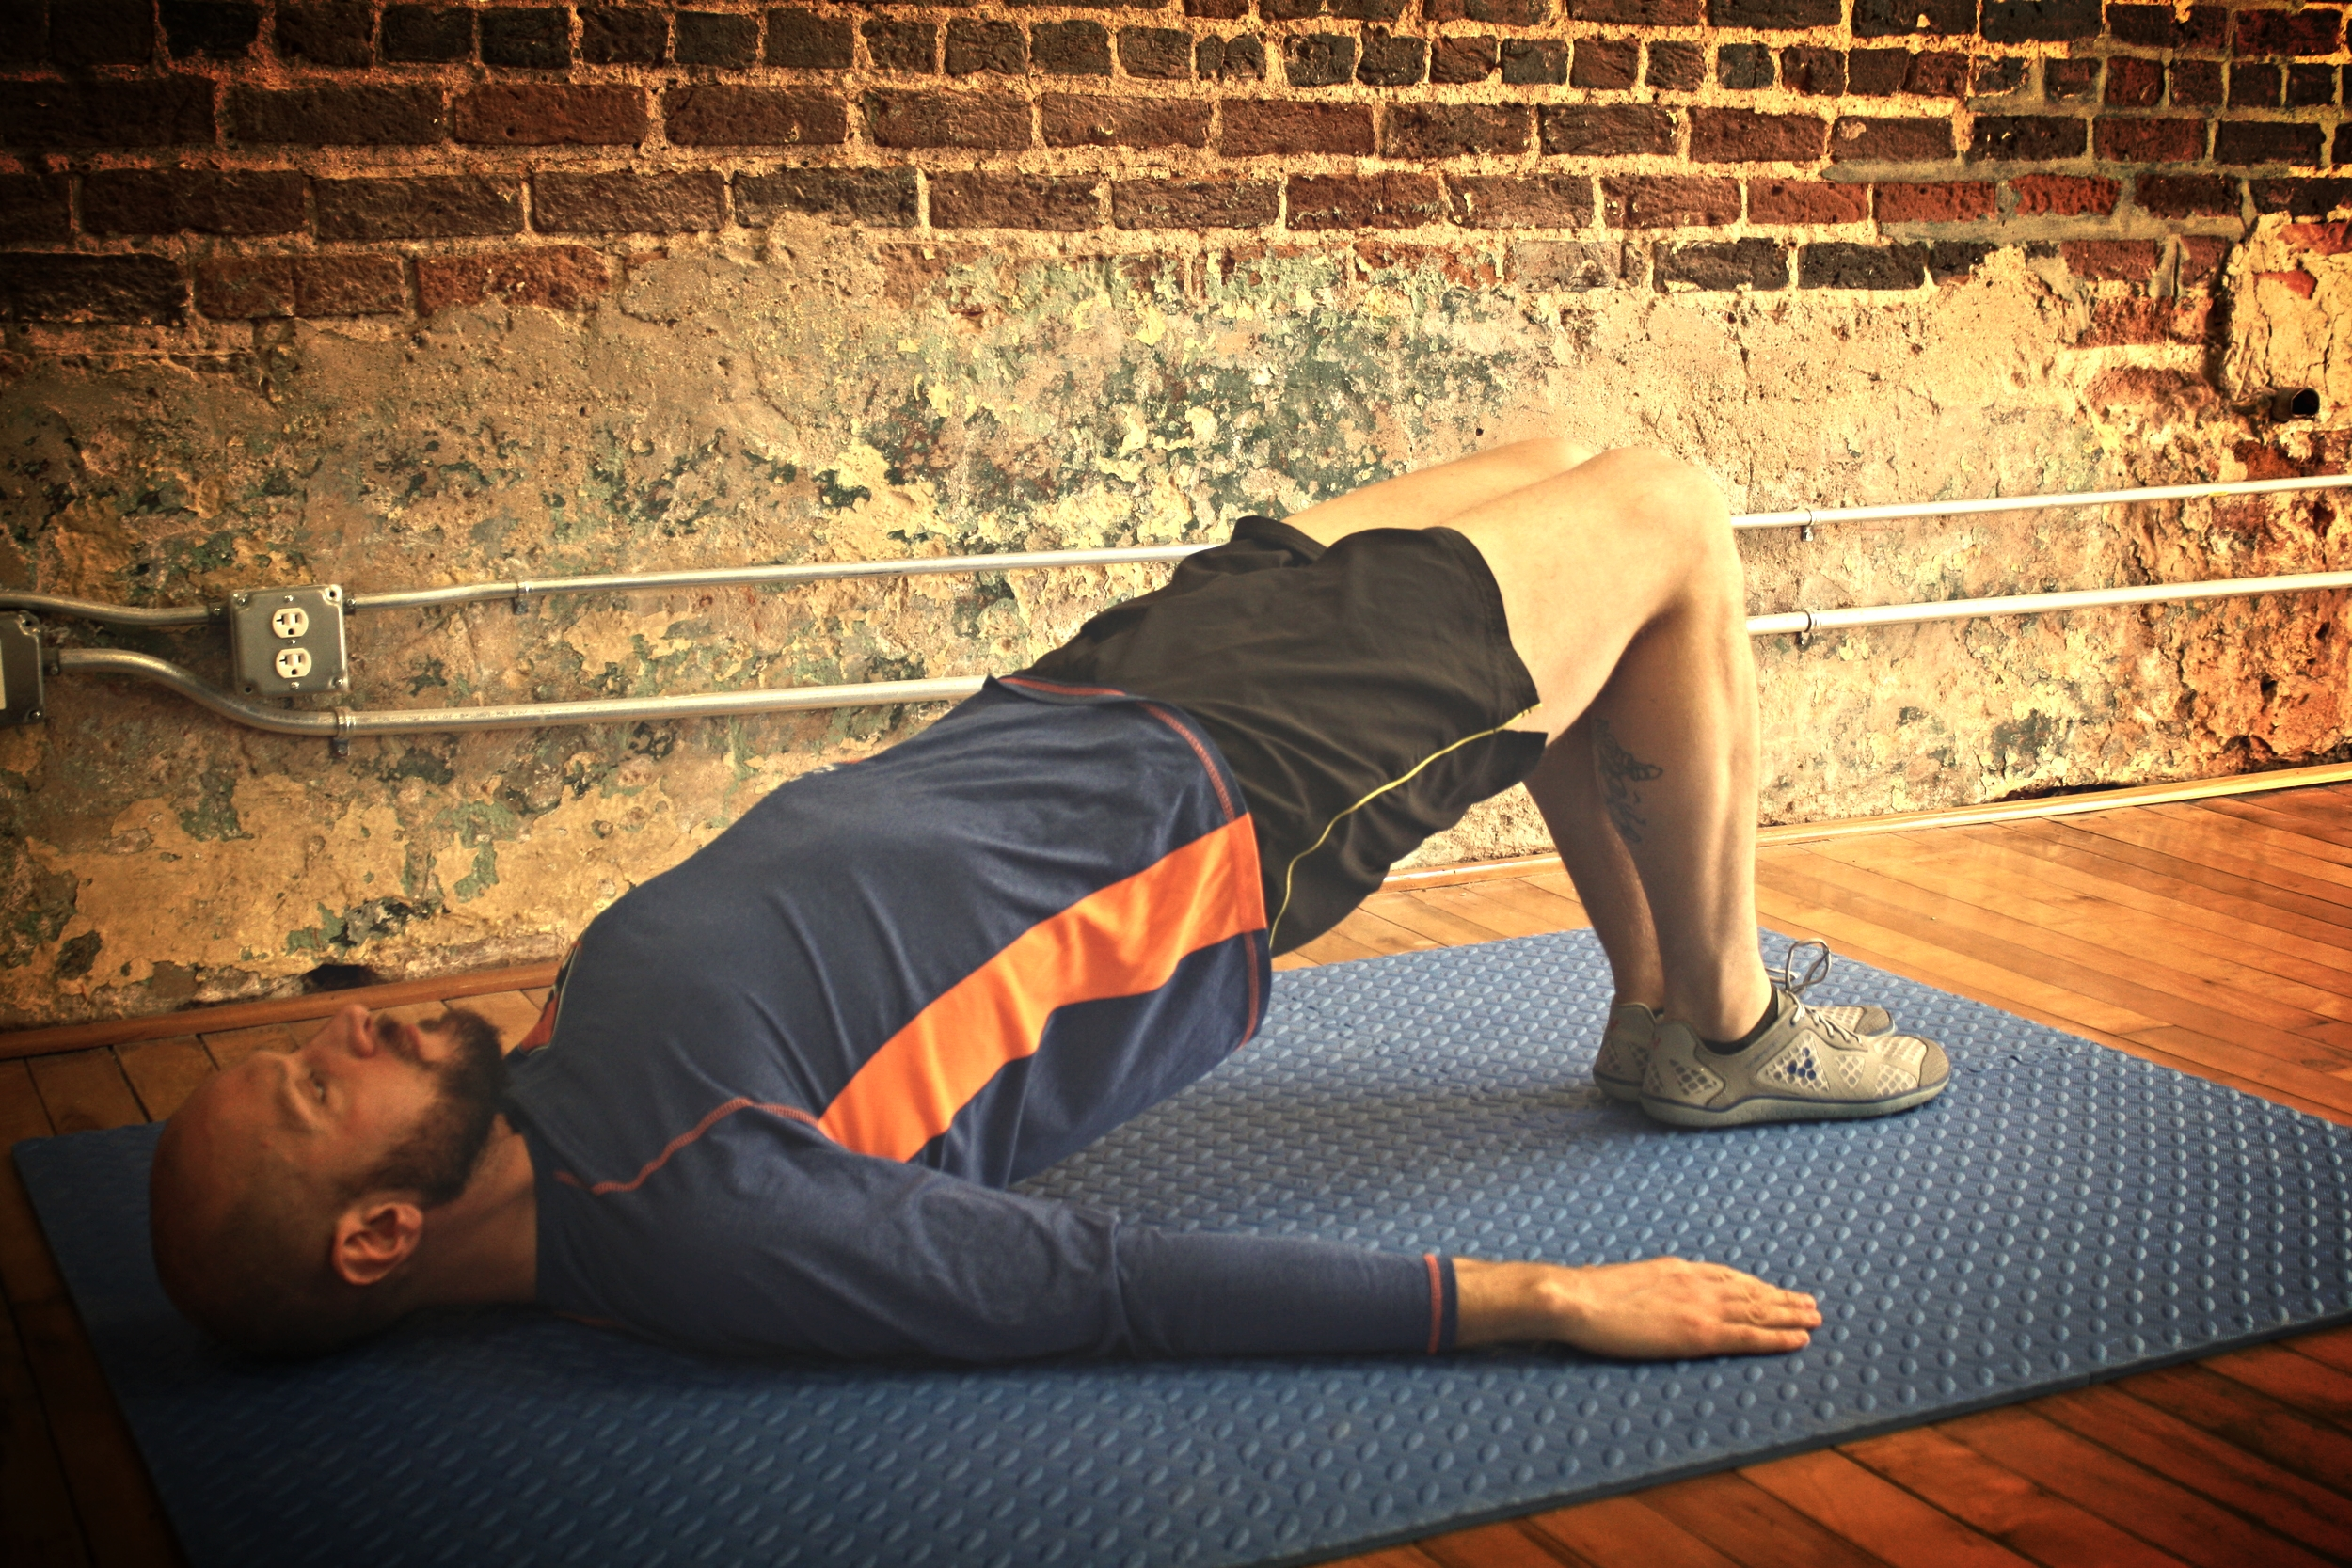 Supine bridging with knees and feet together